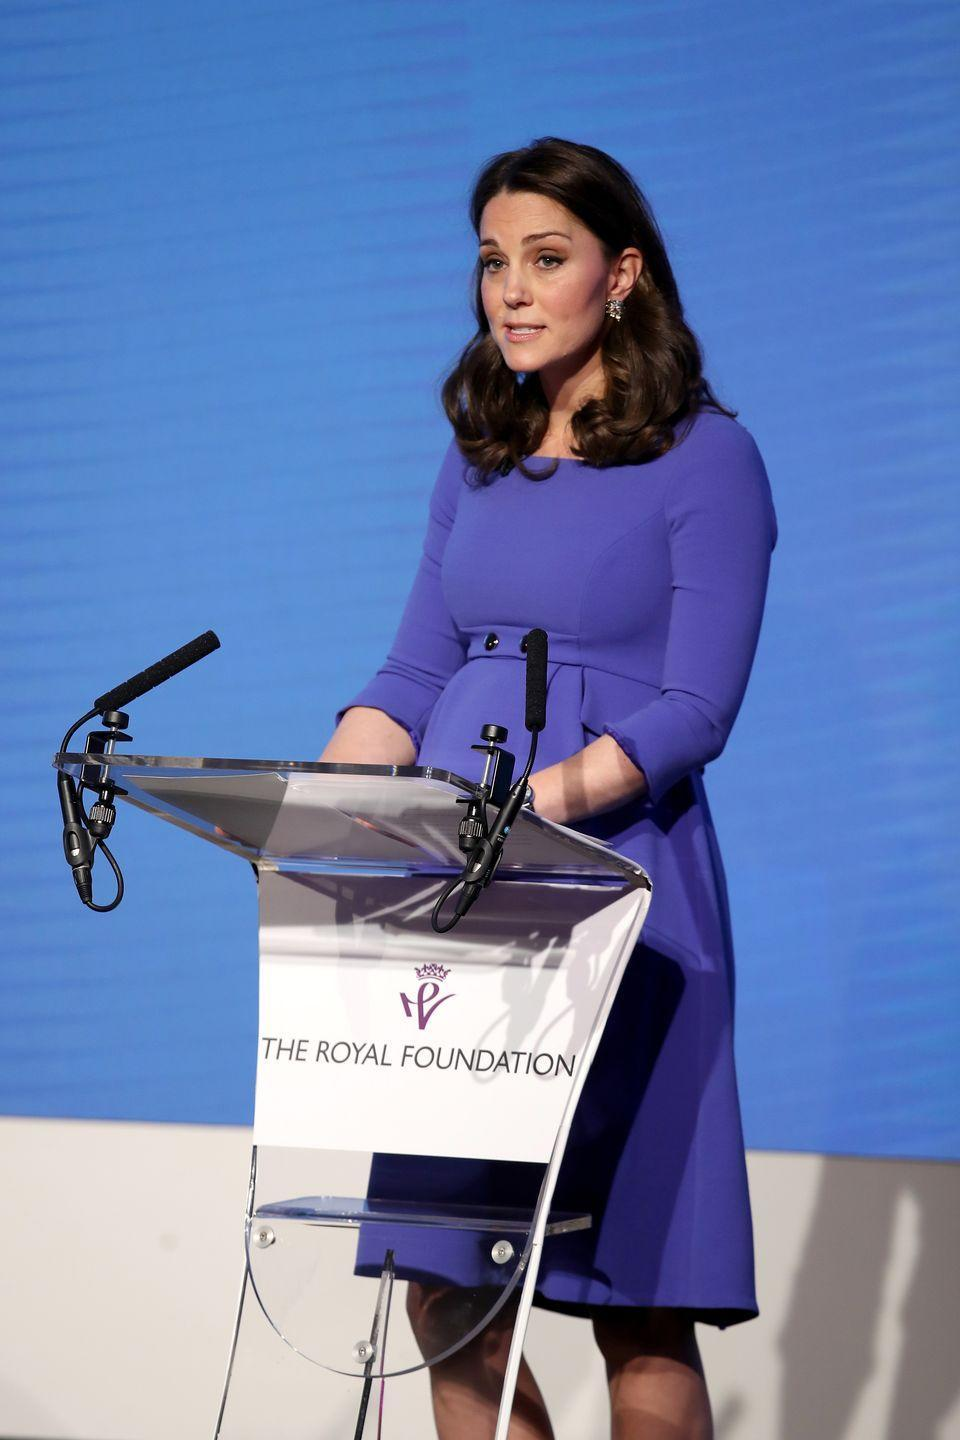 """<p>Duchess Kate wore a button-detailed blue dress by Seraphine with a pair of navy heels <a href=""""https://www.townandcountrymag.com/society/tradition/a18921806/meghan-markle-comments-me-too-times-up/"""" rel=""""nofollow noopener"""" target=""""_blank"""" data-ylk=""""slk:at the Royal Foundation Forum,"""" class=""""link rapid-noclick-resp"""">at the Royal Foundation Forum,</a> where she appeared with Meghan Markle, Prince Harry, and Prince William. </p>"""